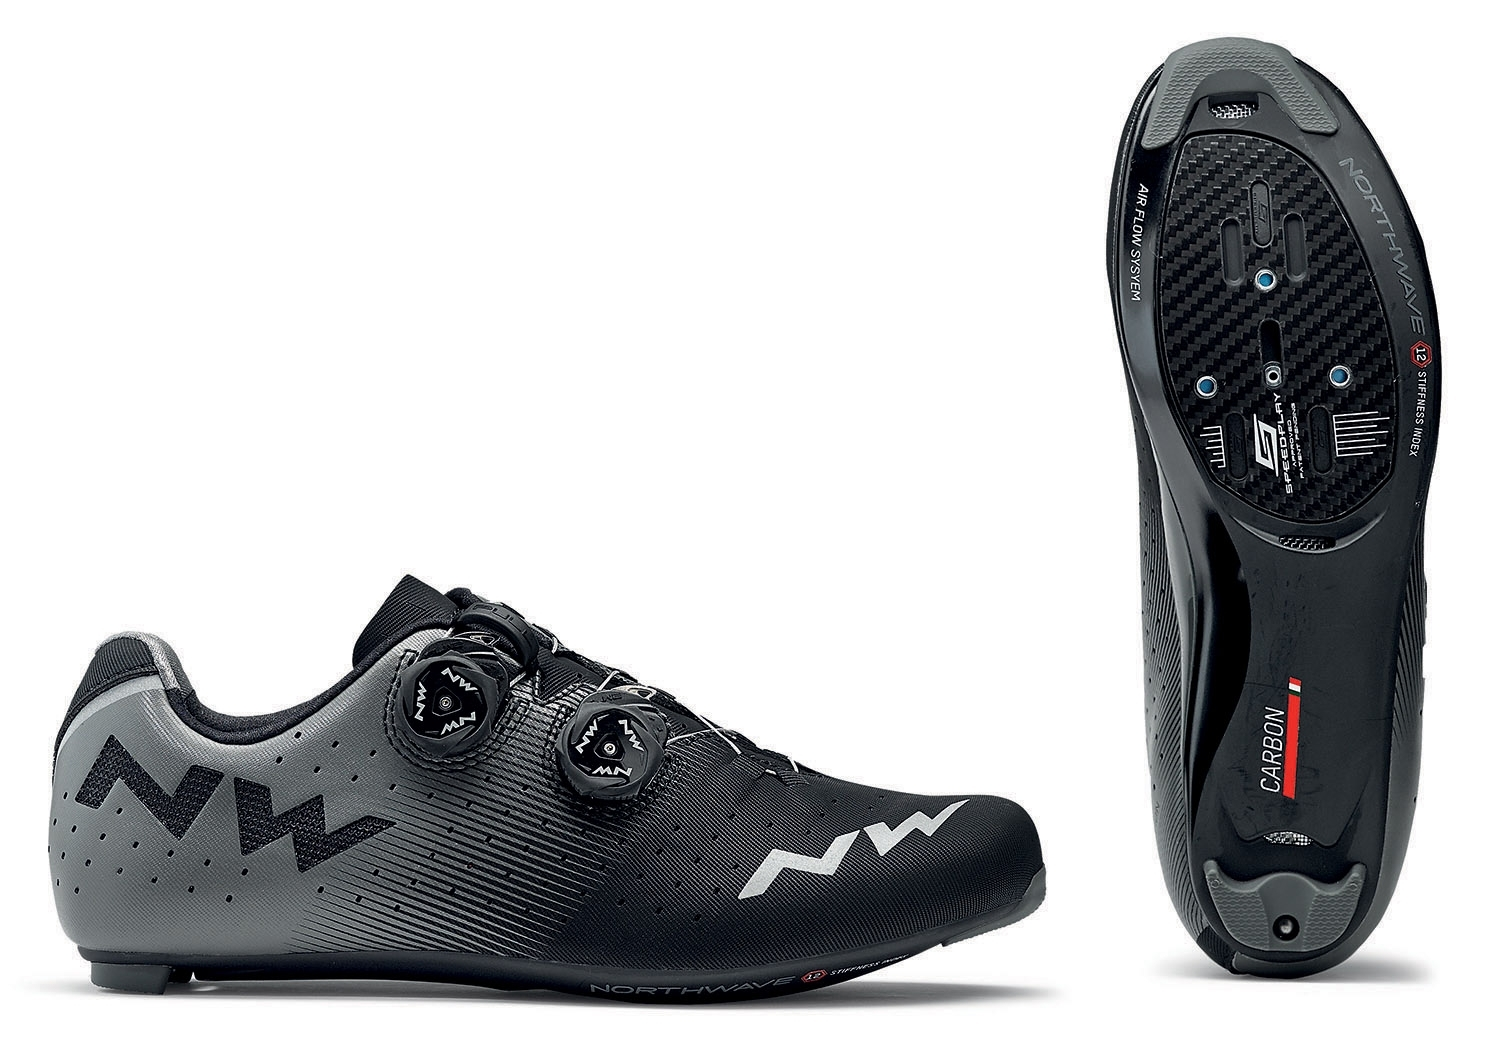 NORTHWAVE Shoes cyclism road man REVOLUTION black/gray antracite